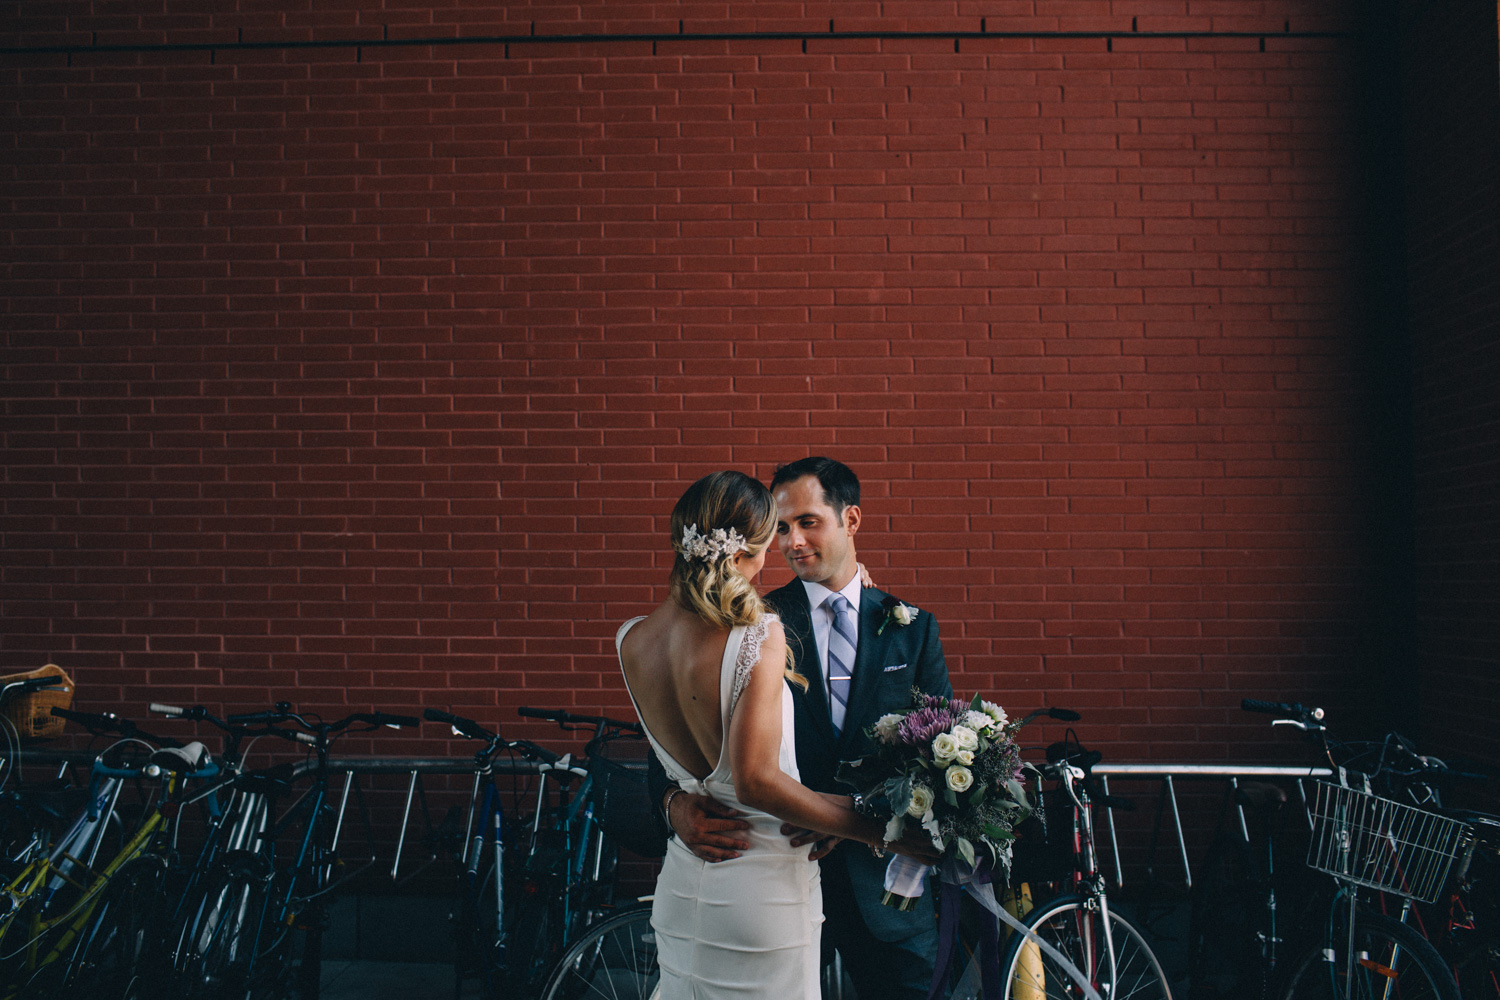 steam-whistle-brewery-wedding-photos-toronto-wedding-photography-by-sam-wong-of-artanis-collective_01031